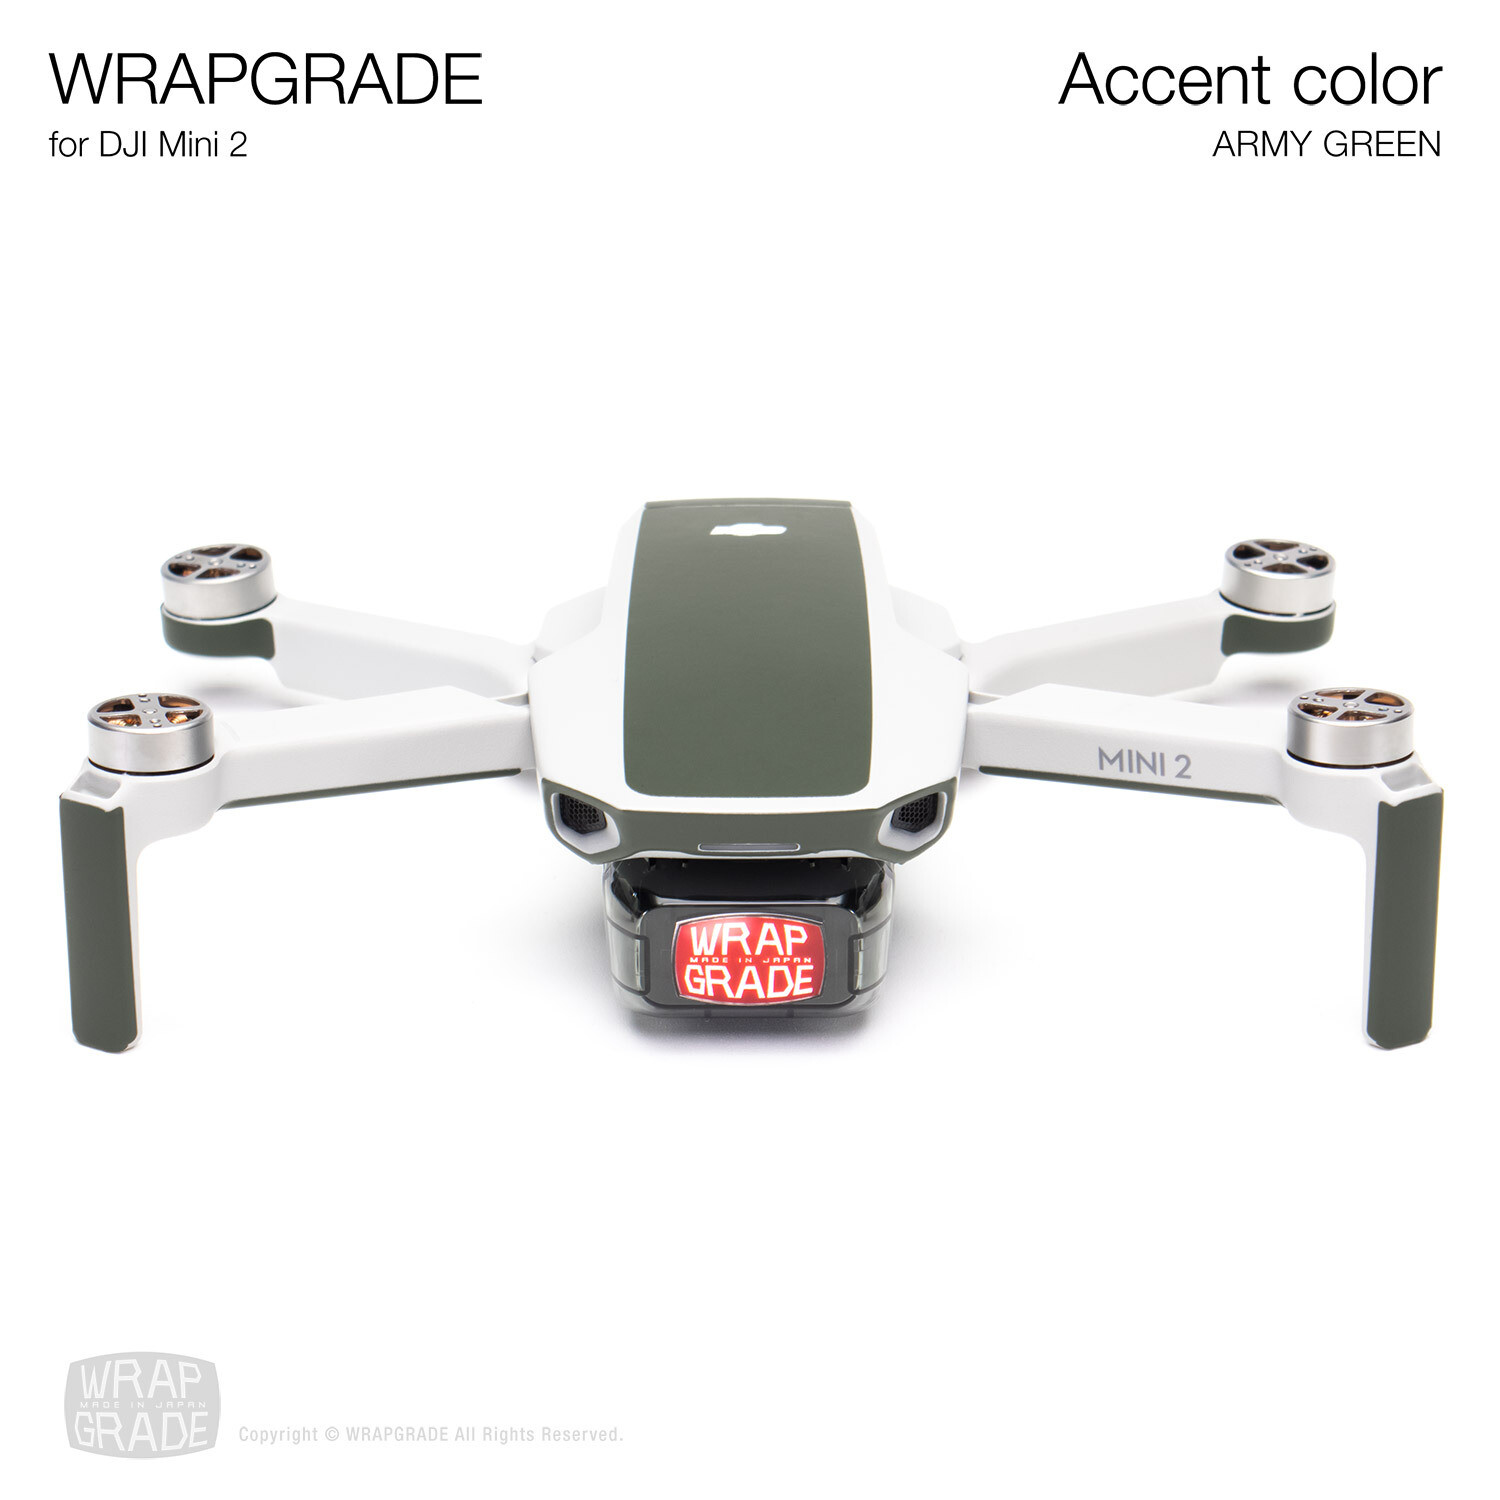 Wrapgrade Poly Skin for DJI Mini 2 | Accent color (ARMY GREEN)